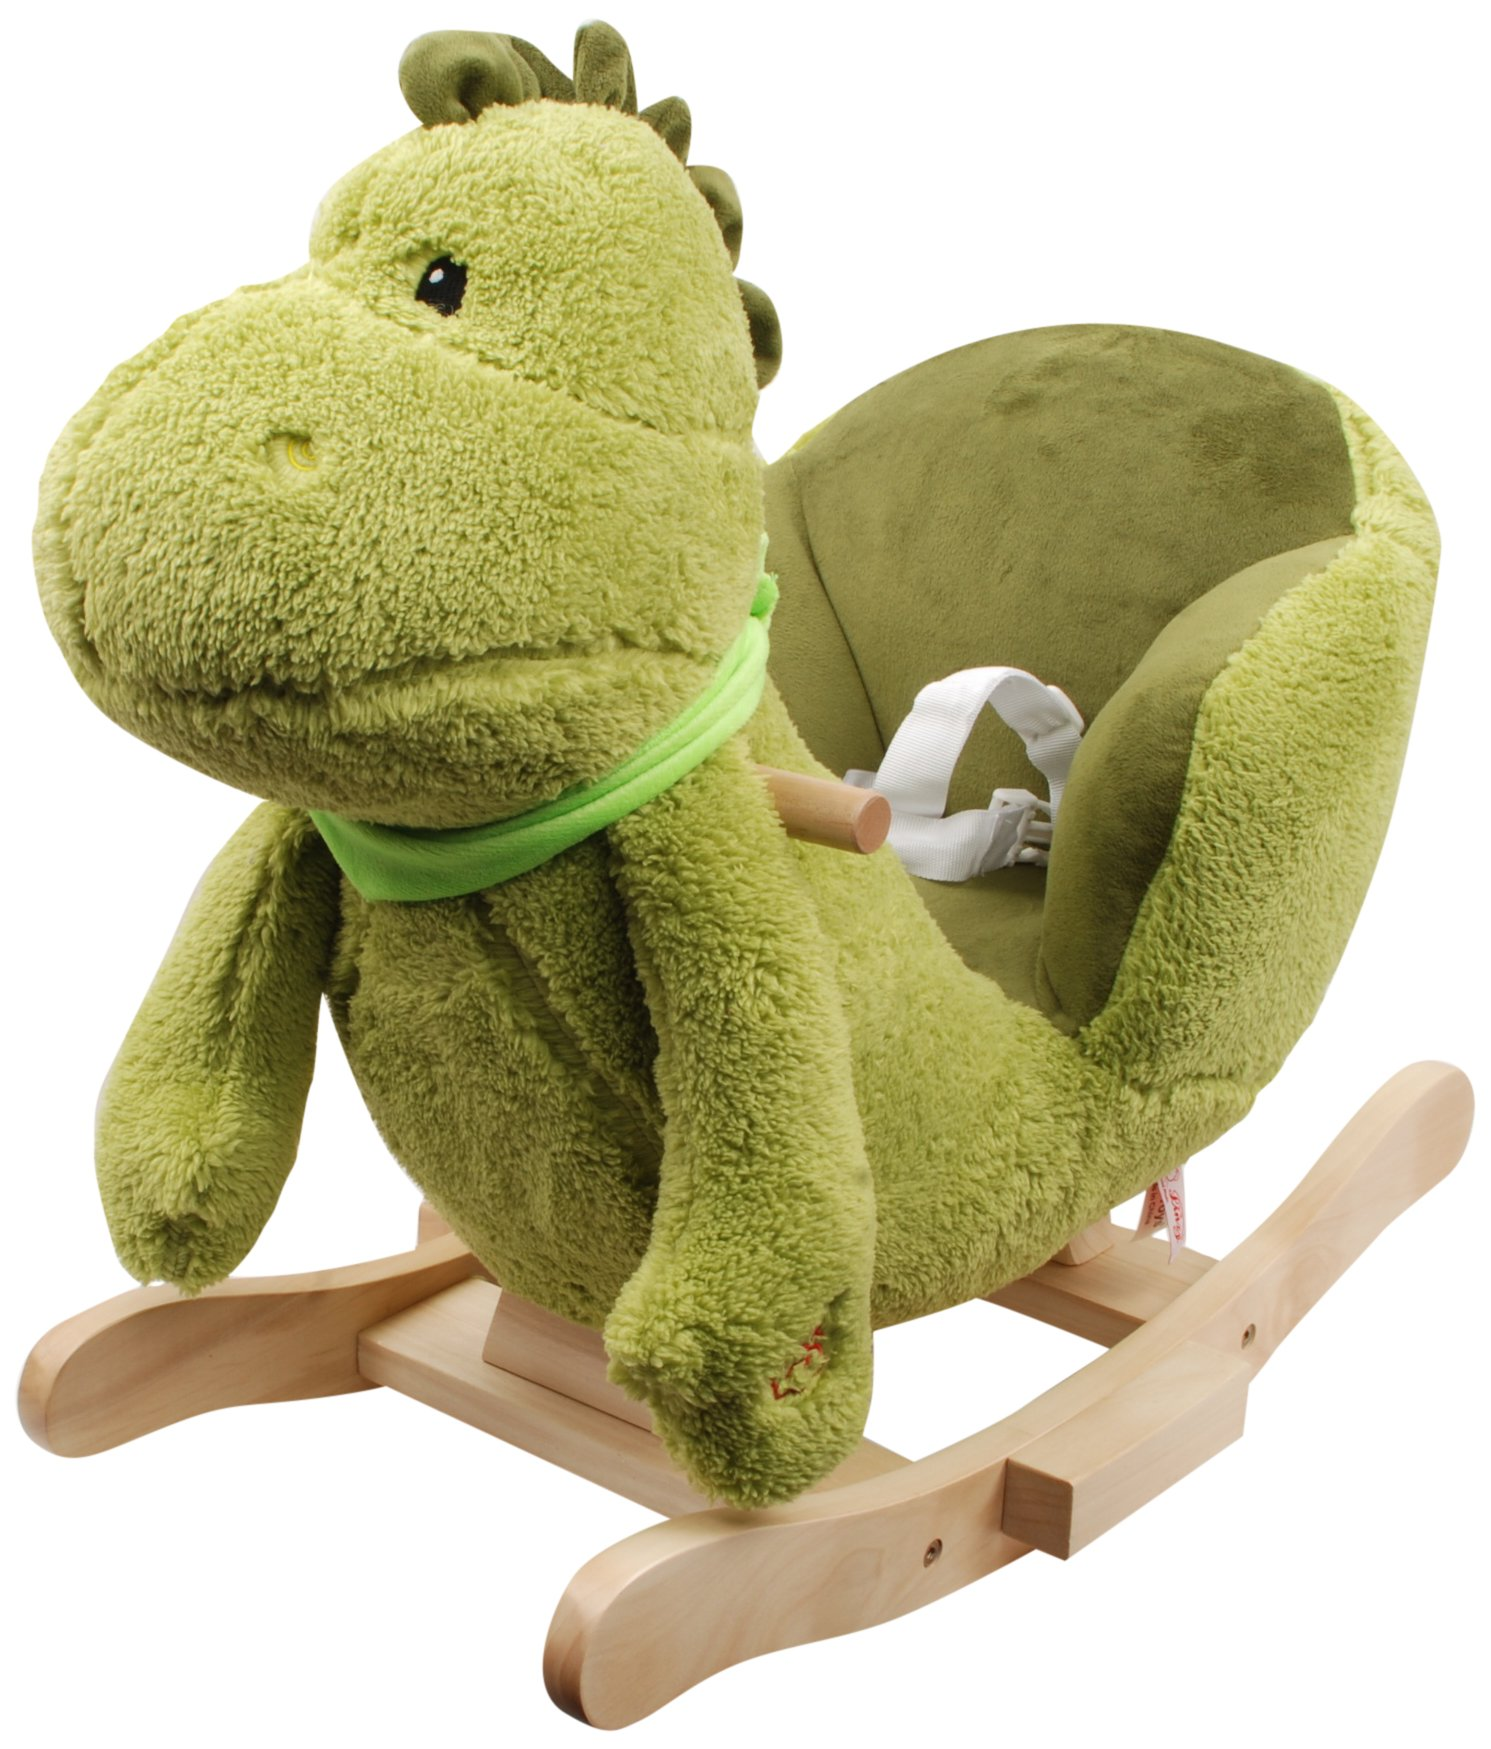 Linzy Plush Dinosaur Rocker Collection with Nursery Rhymes Sound Rocking Animal, Green, 24''